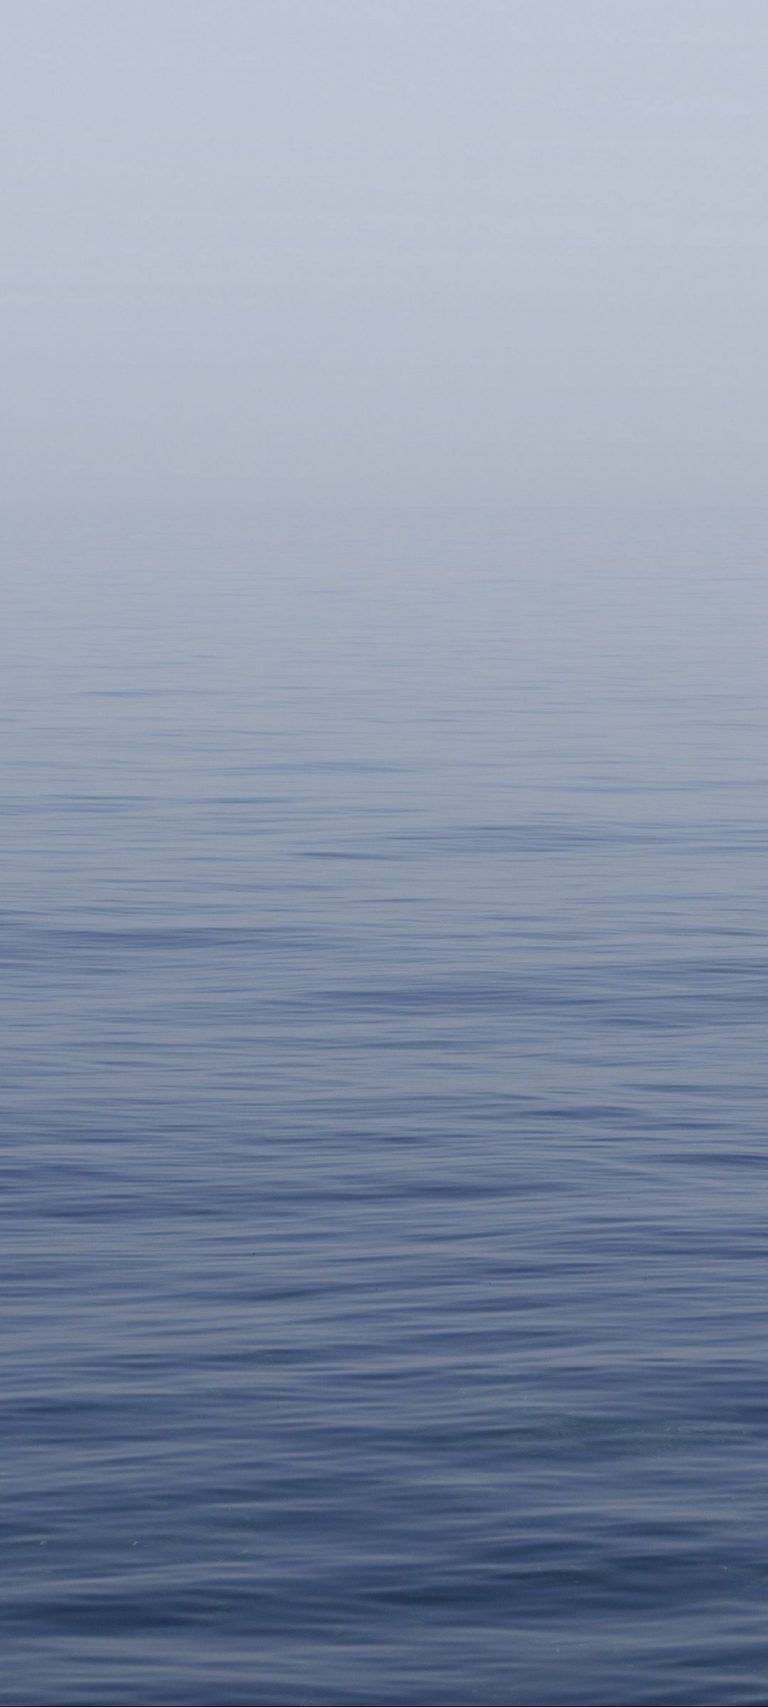 Sea Surface Blue Sky 1080x2400 768x1707